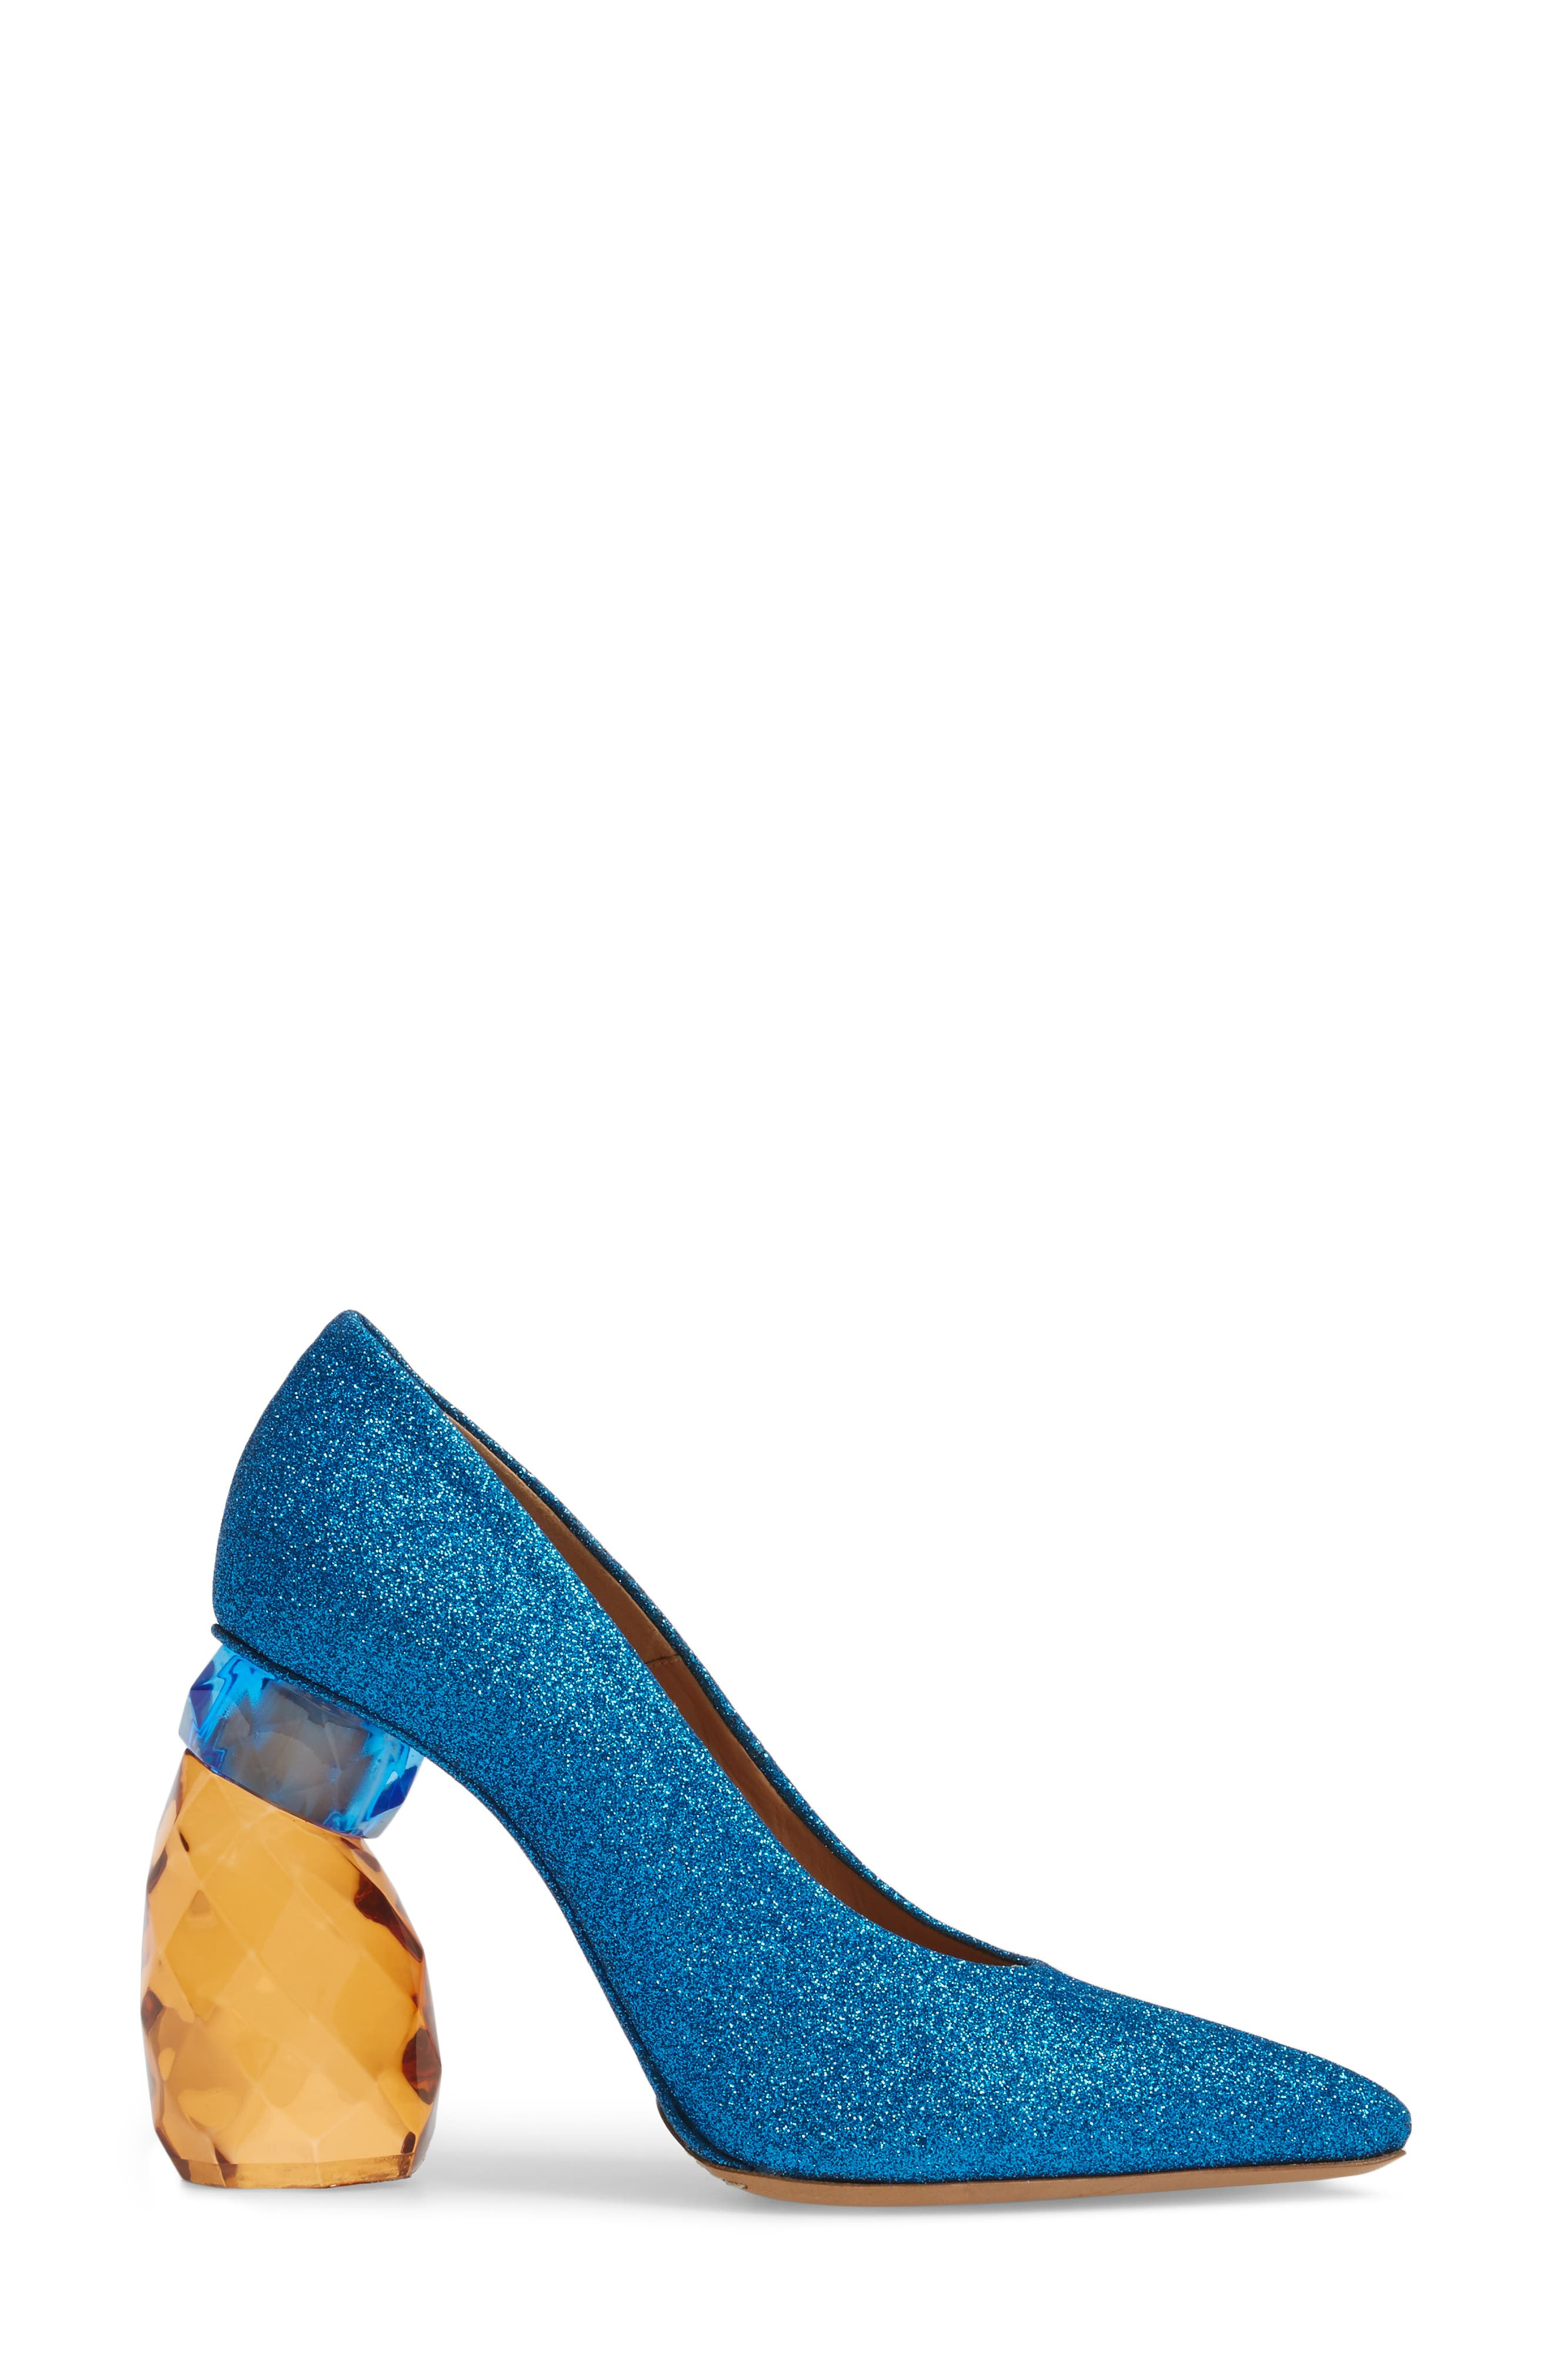 Alternate Image 3  - Dries Van Noten Jewel Heel Pump (Women)